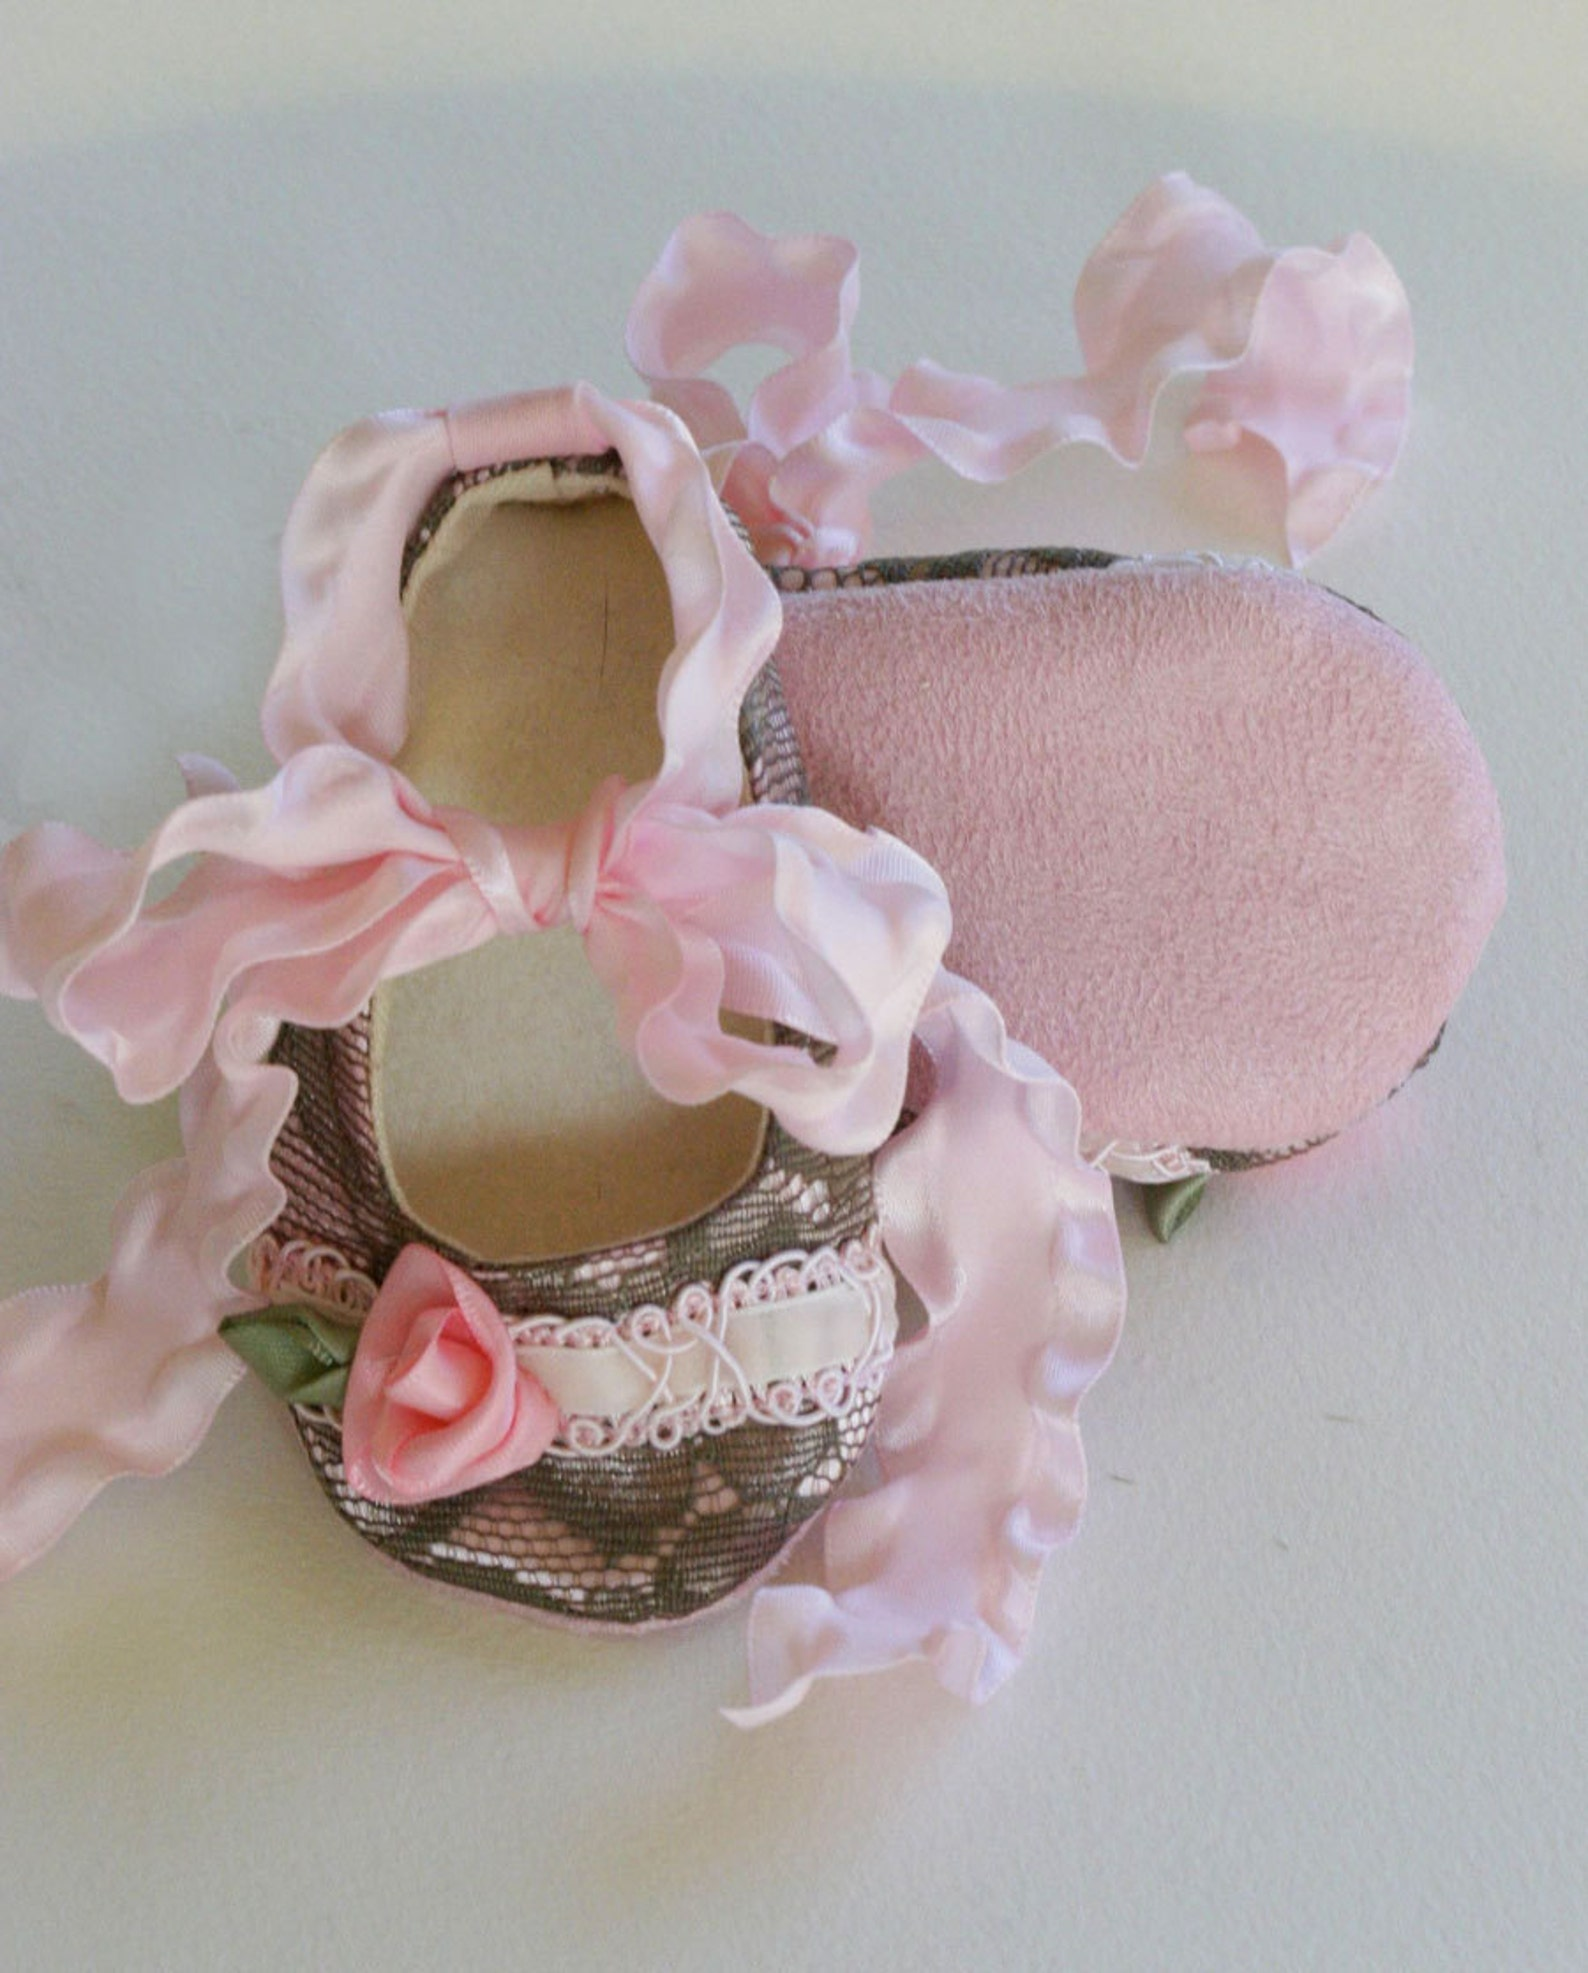 lace baby bootie, pink baby crib shoe, shower gift toddler ballet flat, baby ballet slipper, flower girl shoe, handmade baby sho